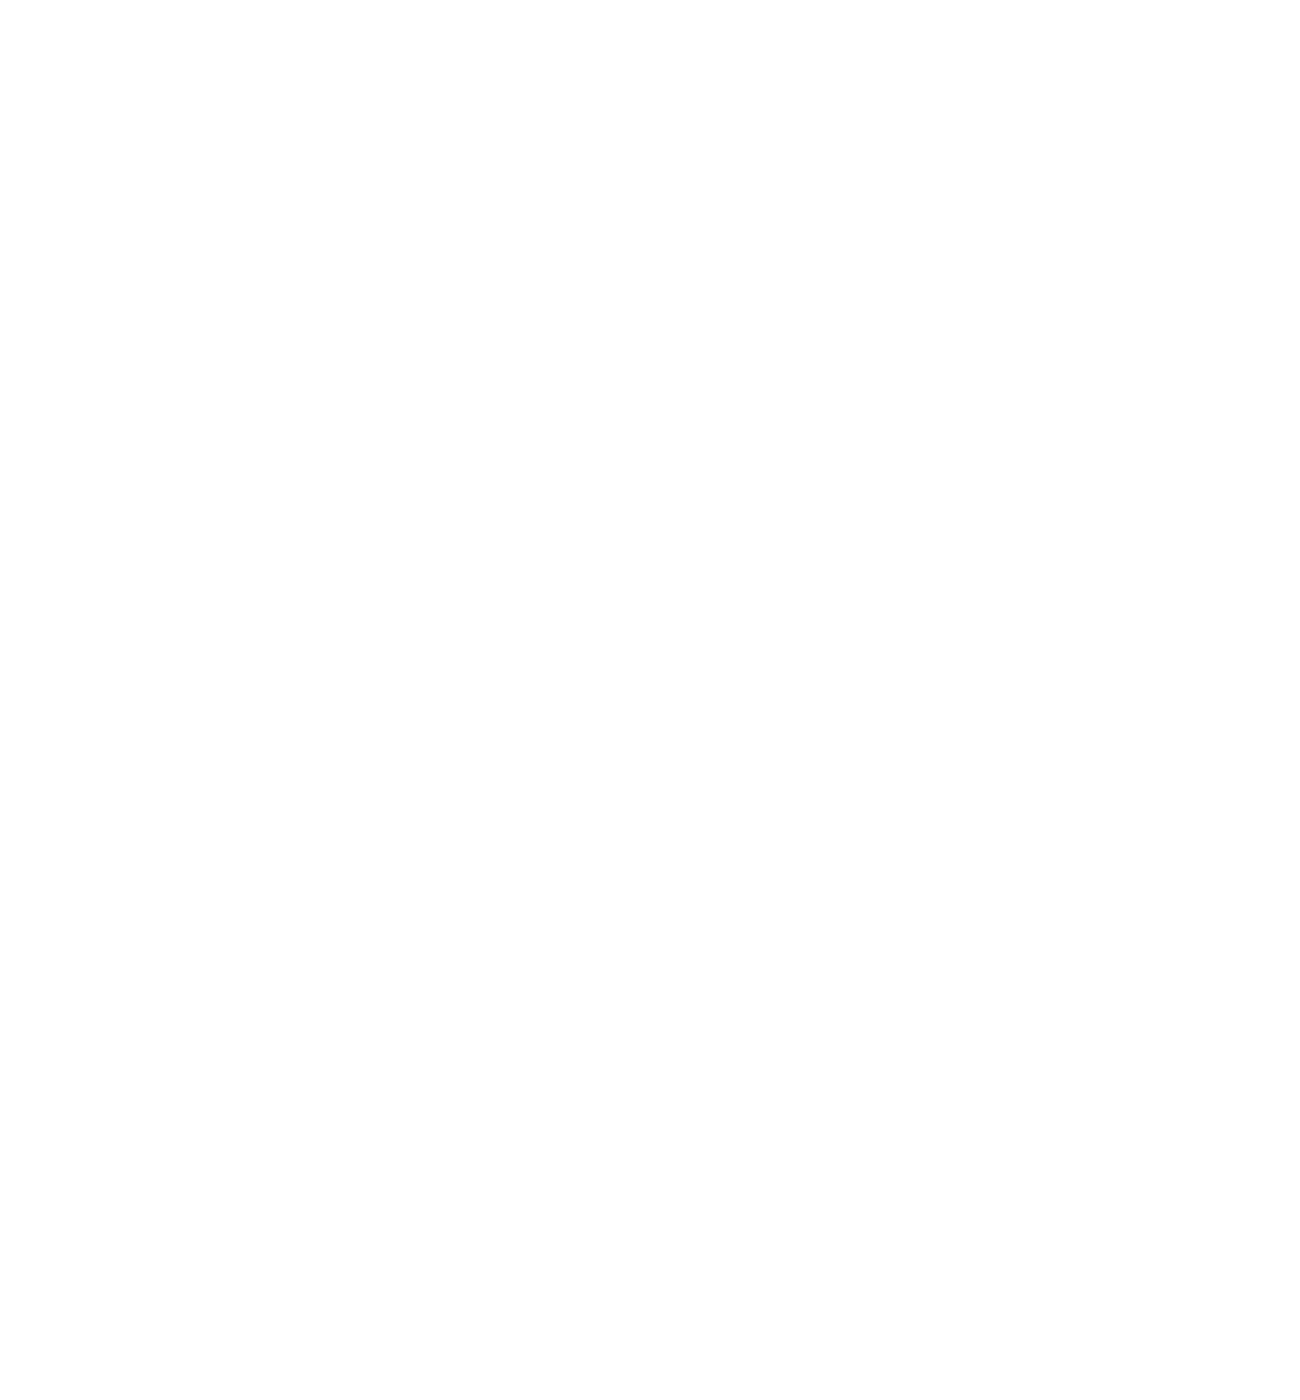 Always with you./OUR WEB SHOP SITE